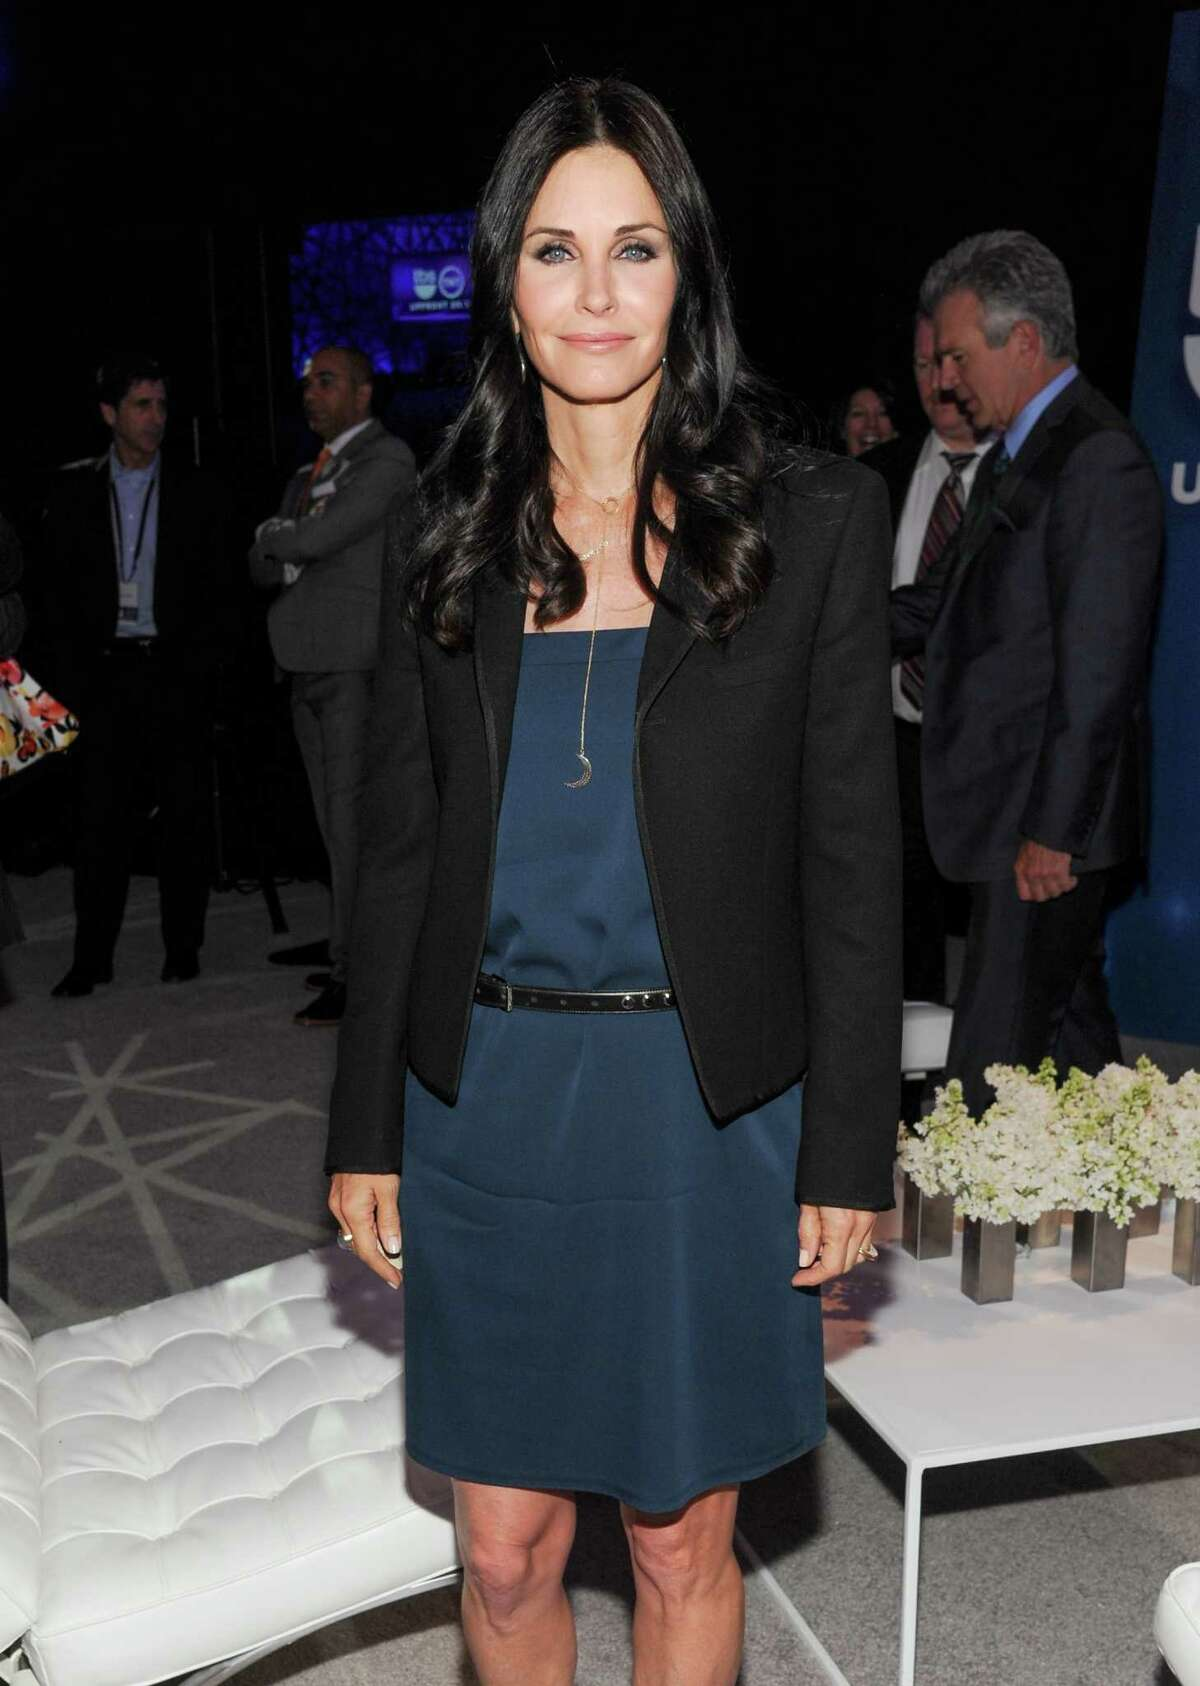 Actress Courteney Cox attends the TNT and TBS 2013 Upfront at the Hammerstein Ballroom on Wednesday, May 15, 2013 in New York. (Photo by Evan Agostini/Invision/AP)